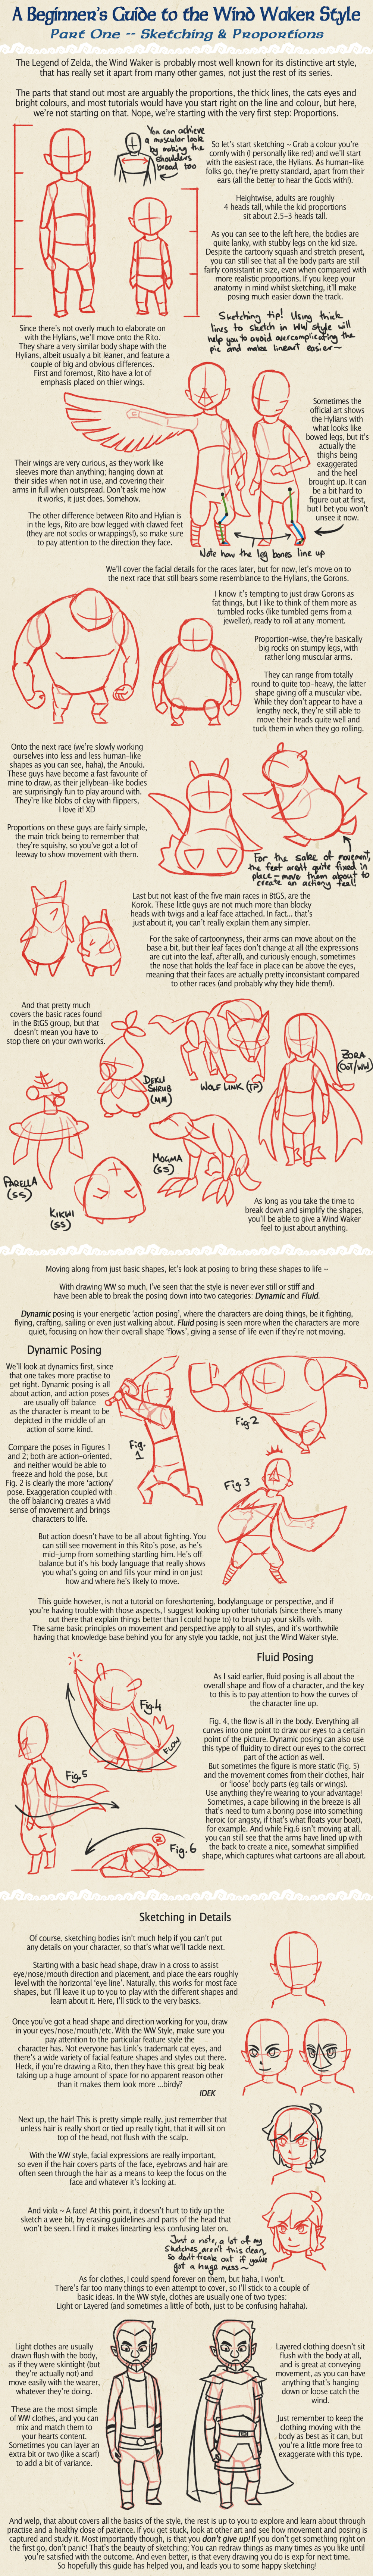 Beginners Guide to WW Style P1 - Proportions by tazsaints